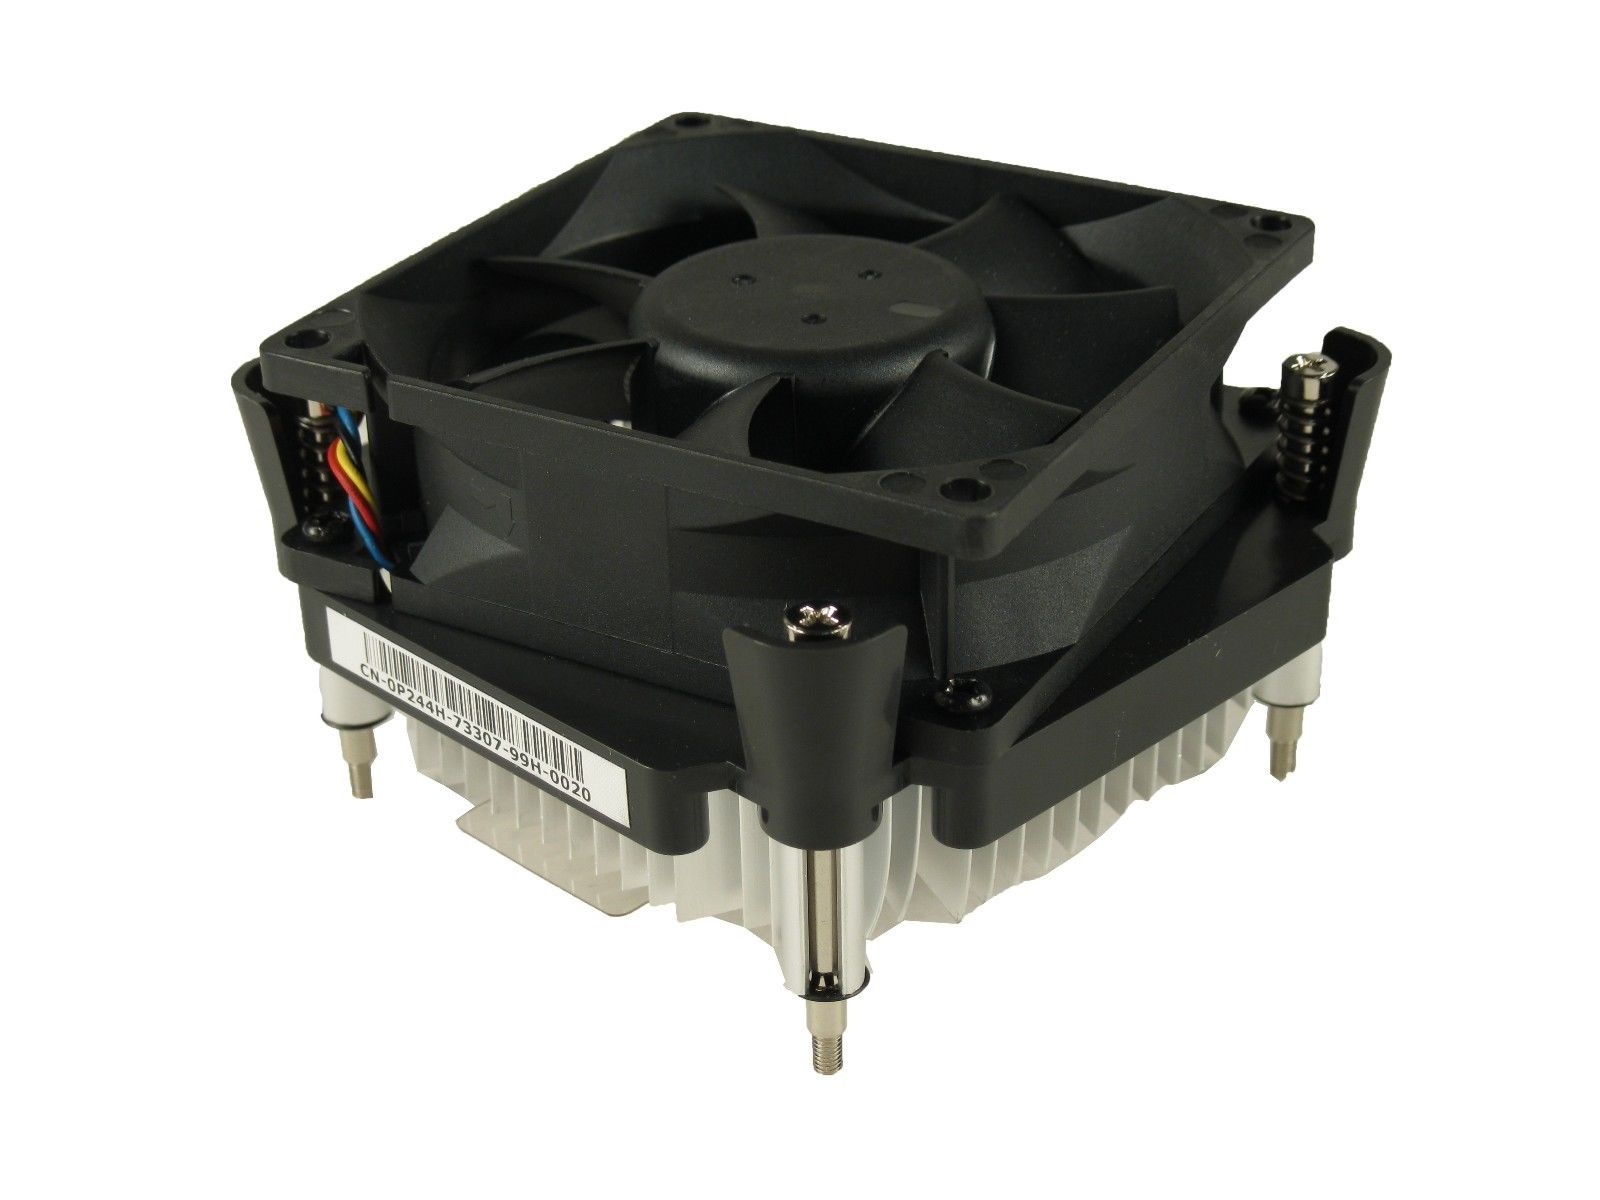 Dell P244H Vostro 220 Series Heatsink and Fan